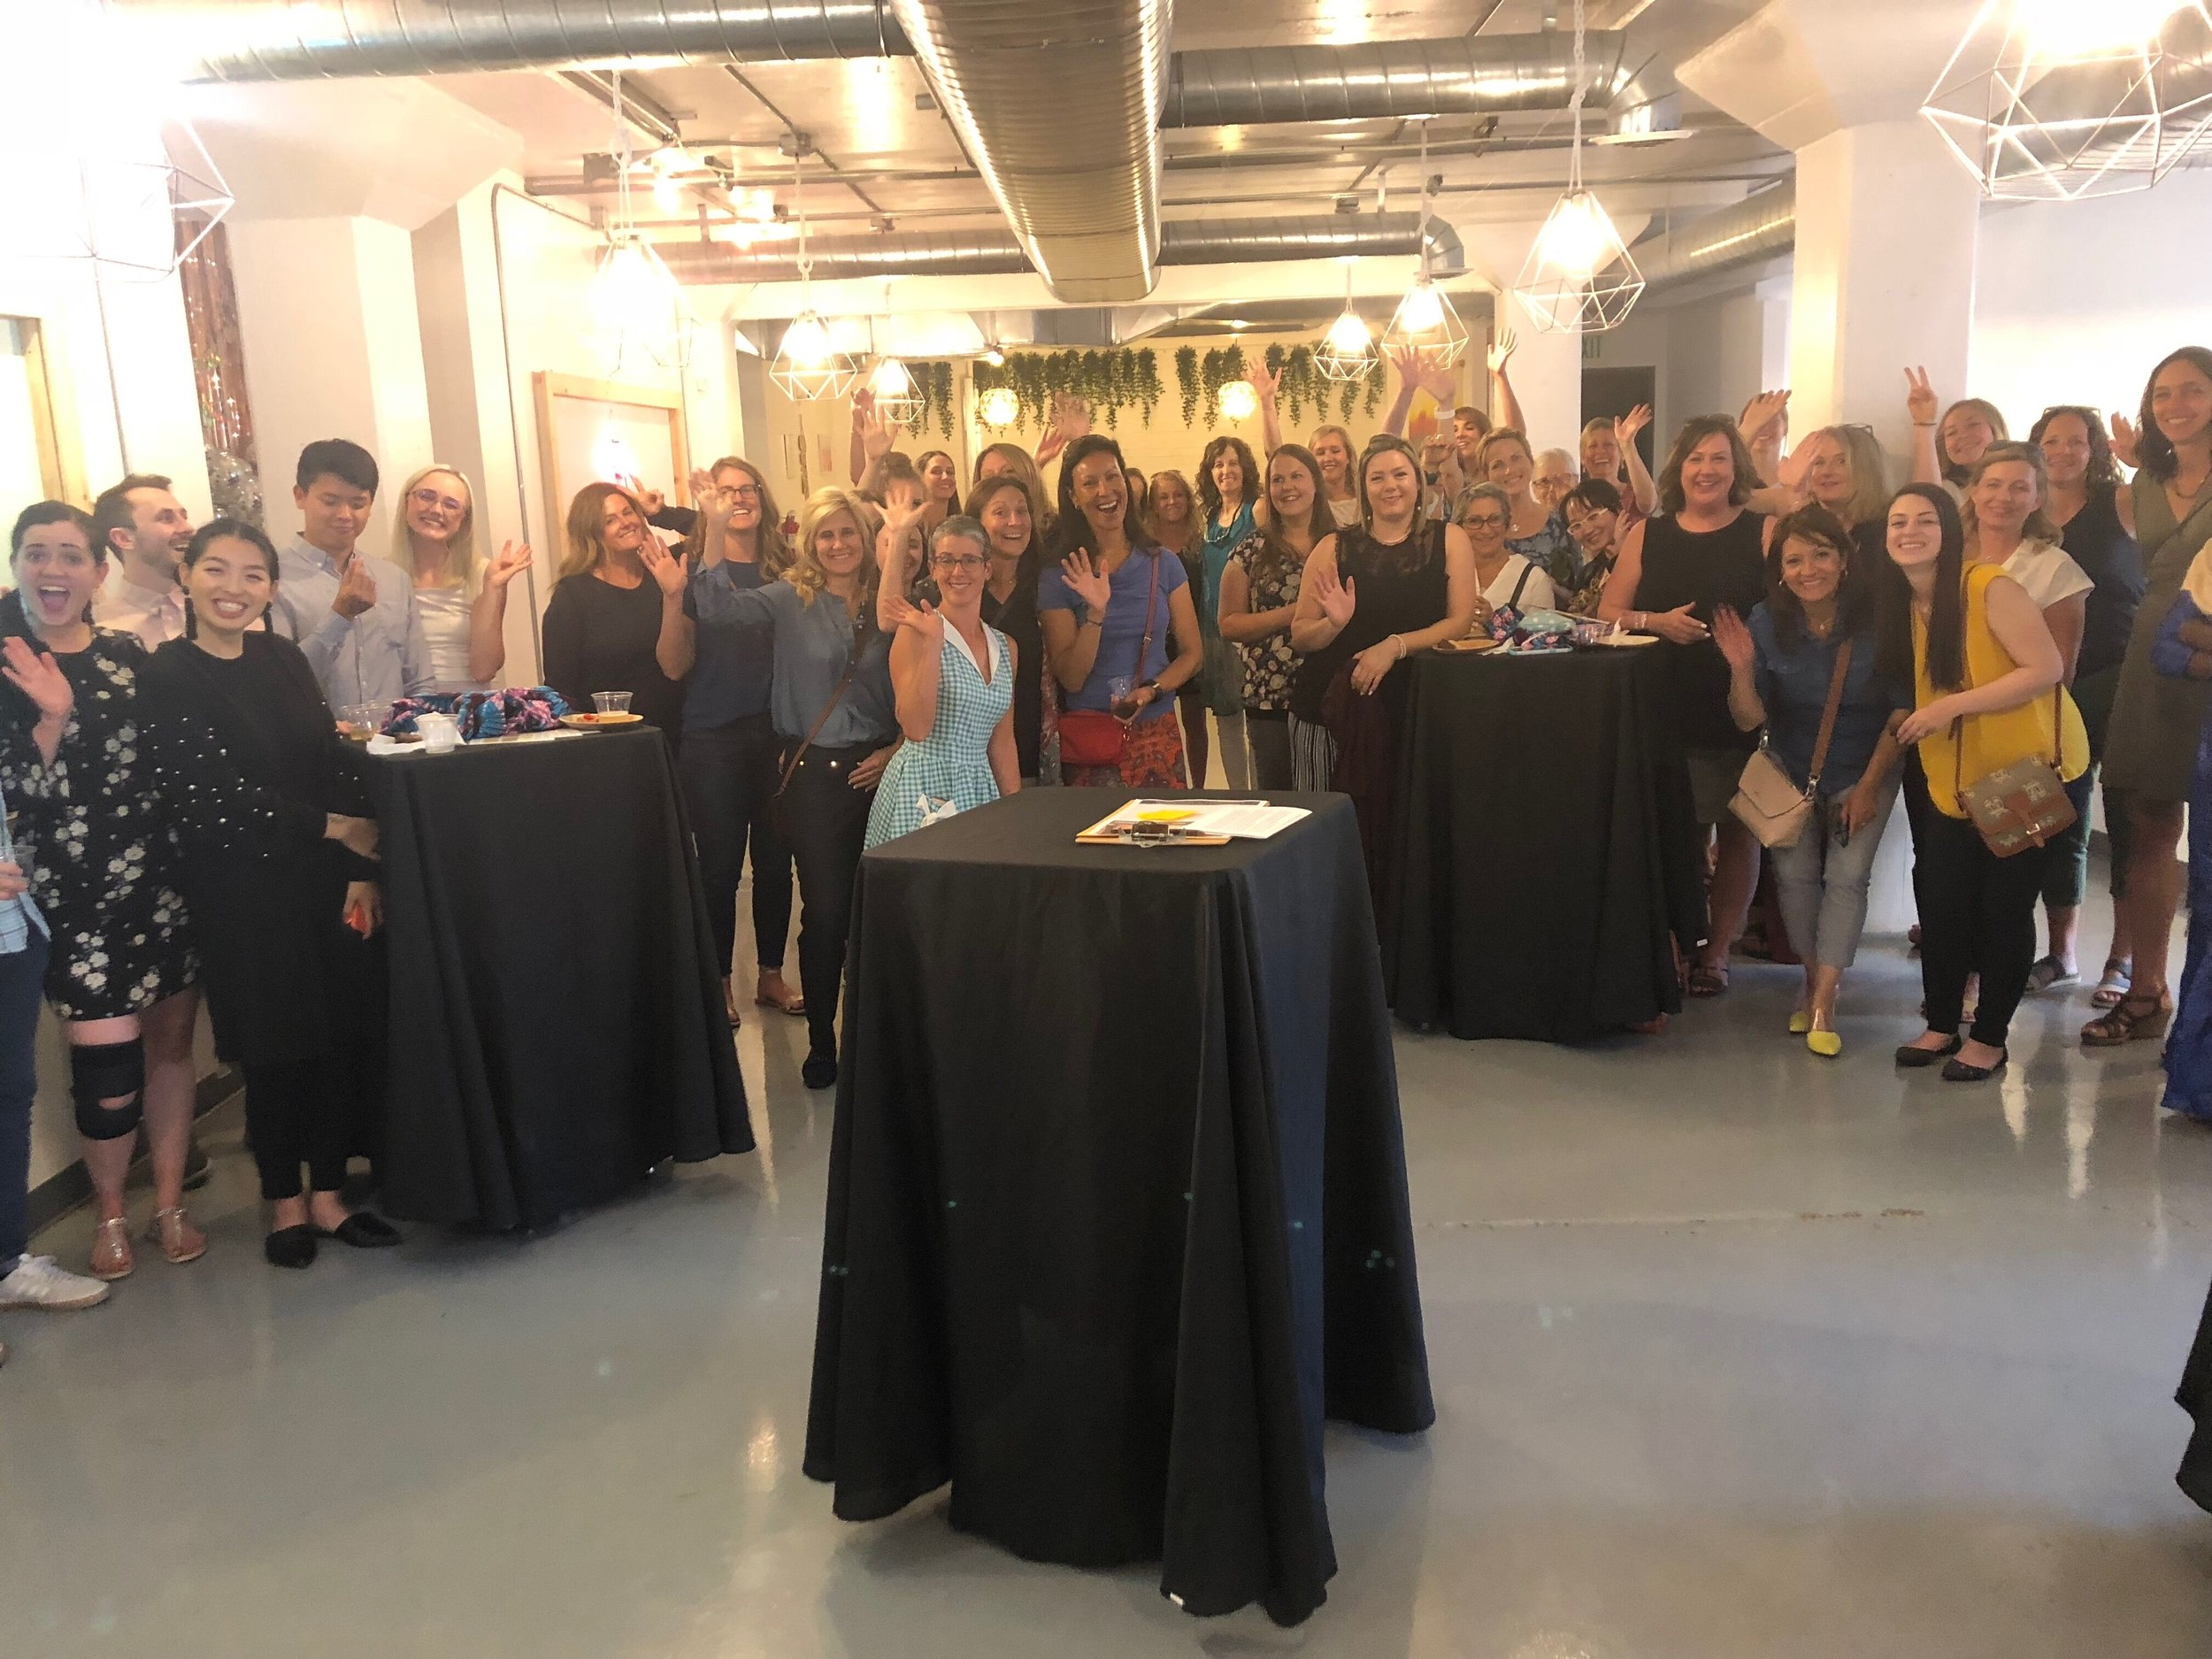 More than 50 women (and supportive men!) attended the 50 Women Mixer to kick off our community.